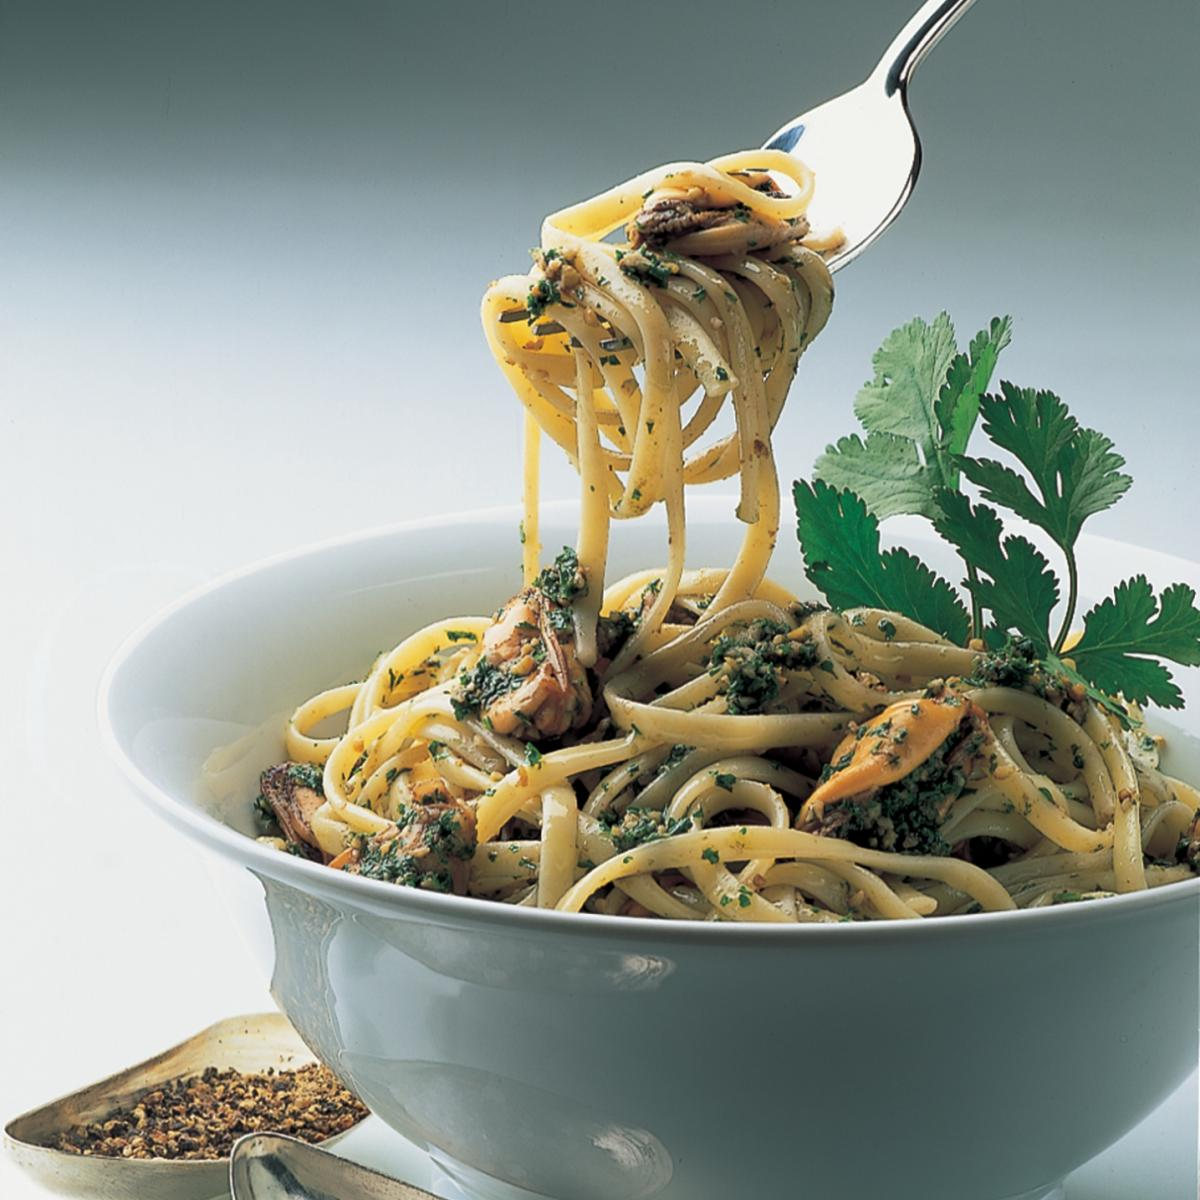 Italian linguine with mussels and walnut parsley pesto